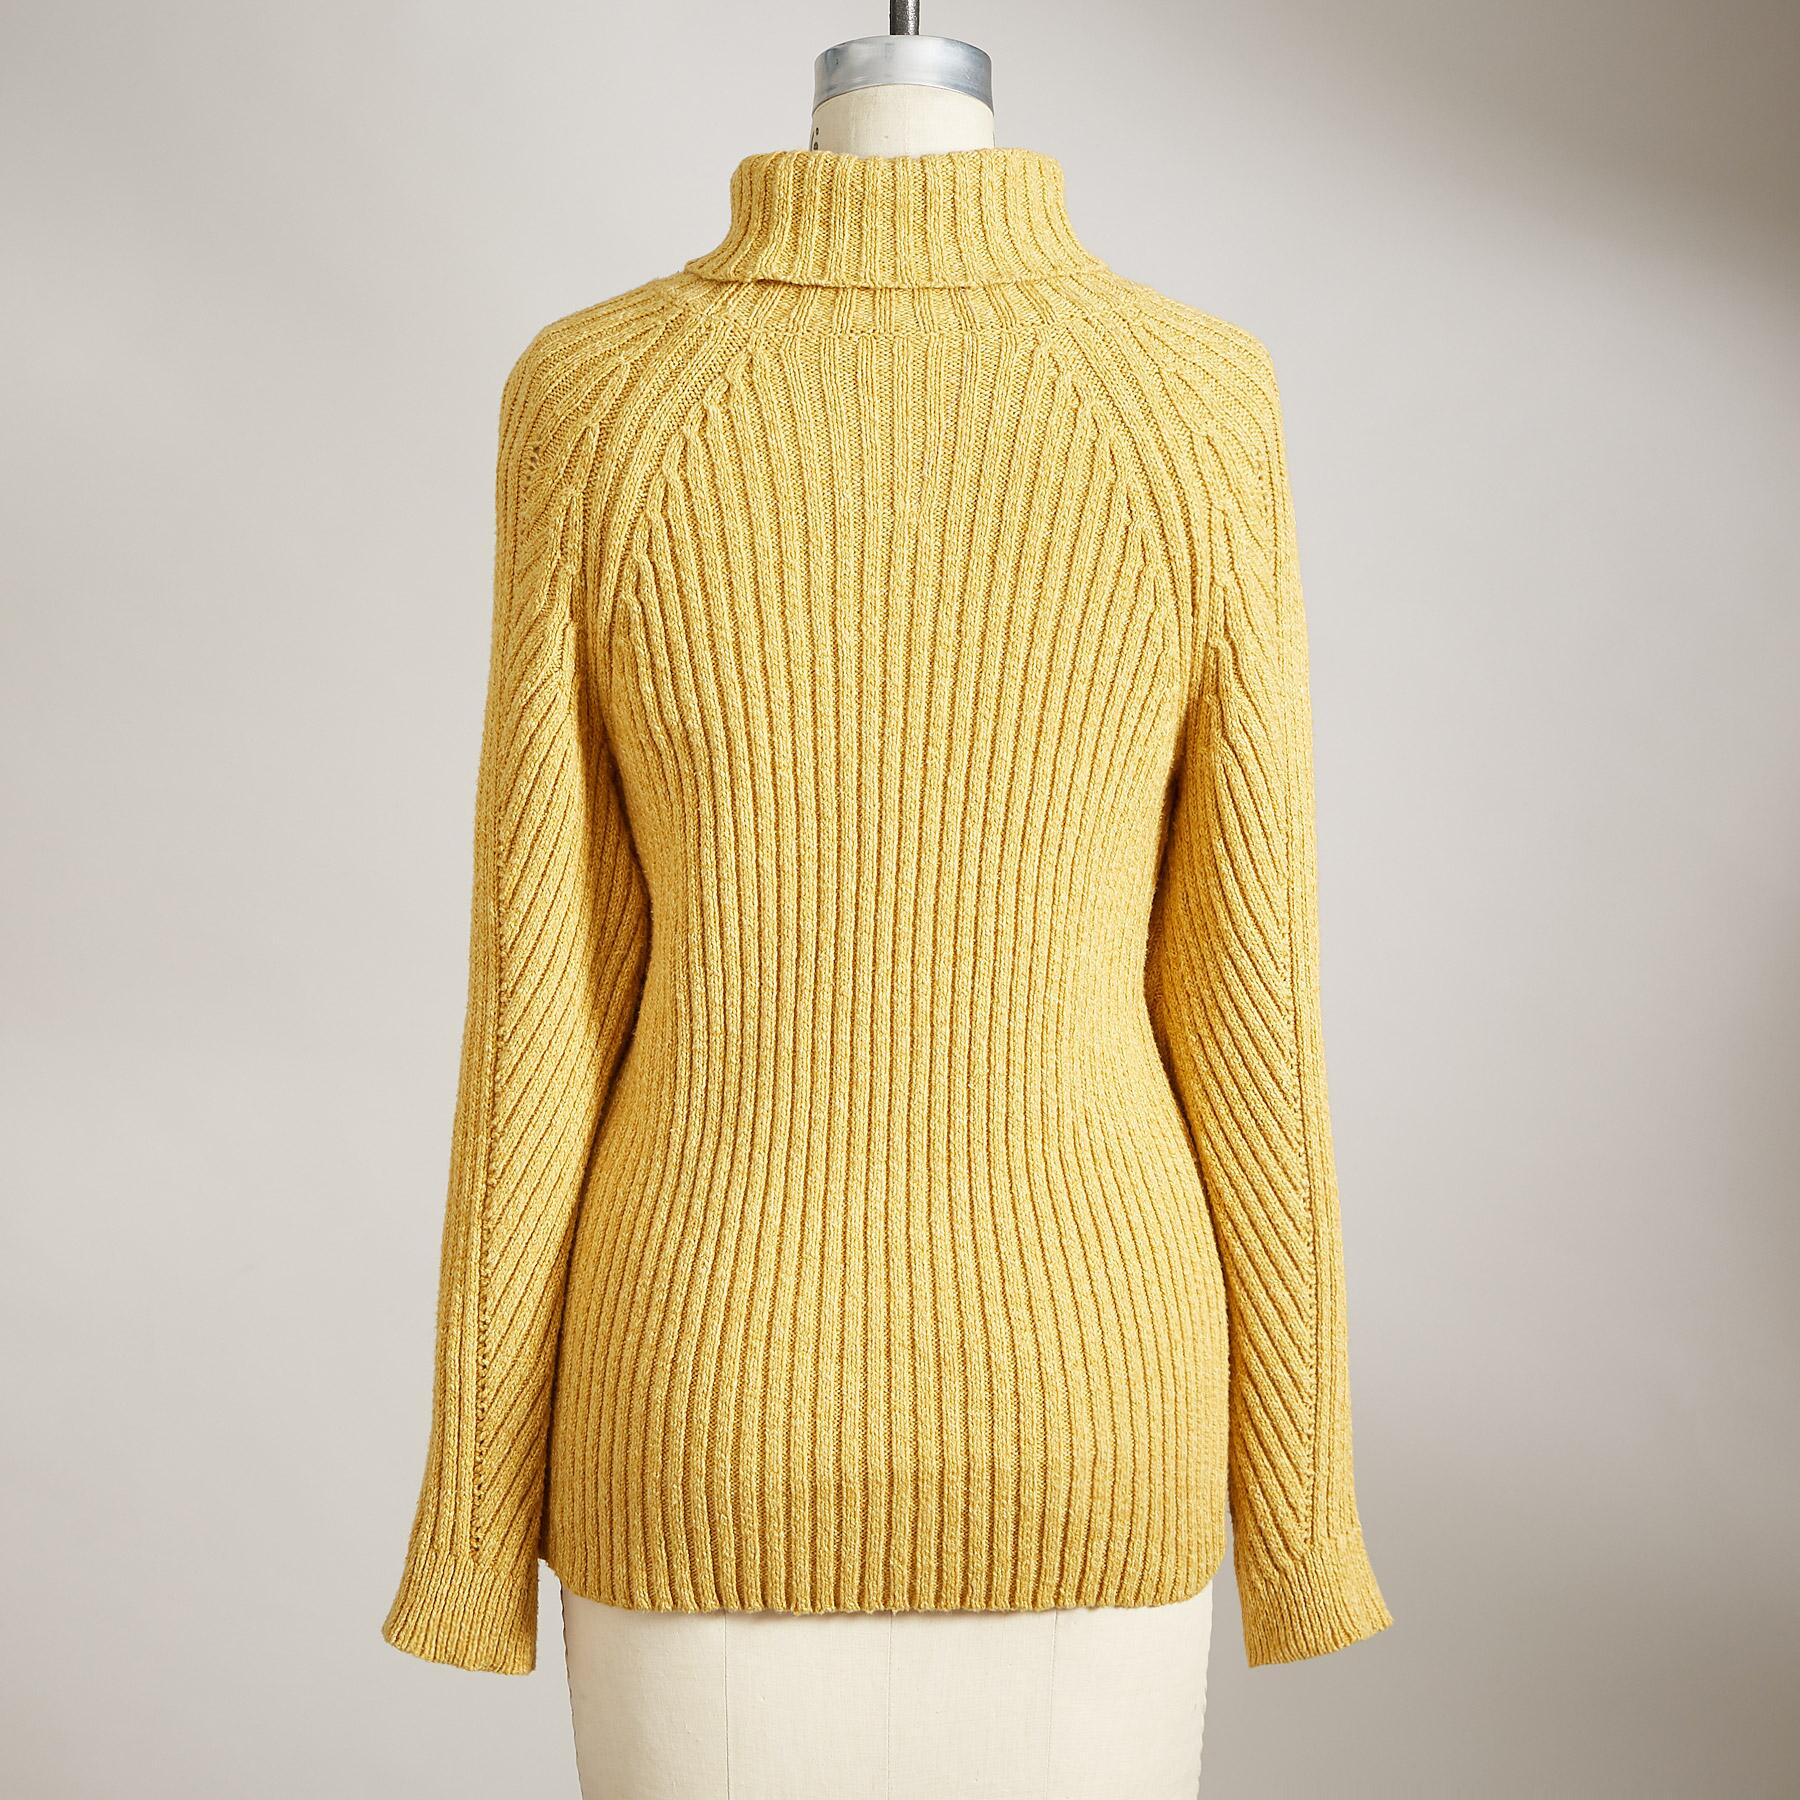 TOASTY DIMENSIONS TURTLENECK - PETITES: View 2